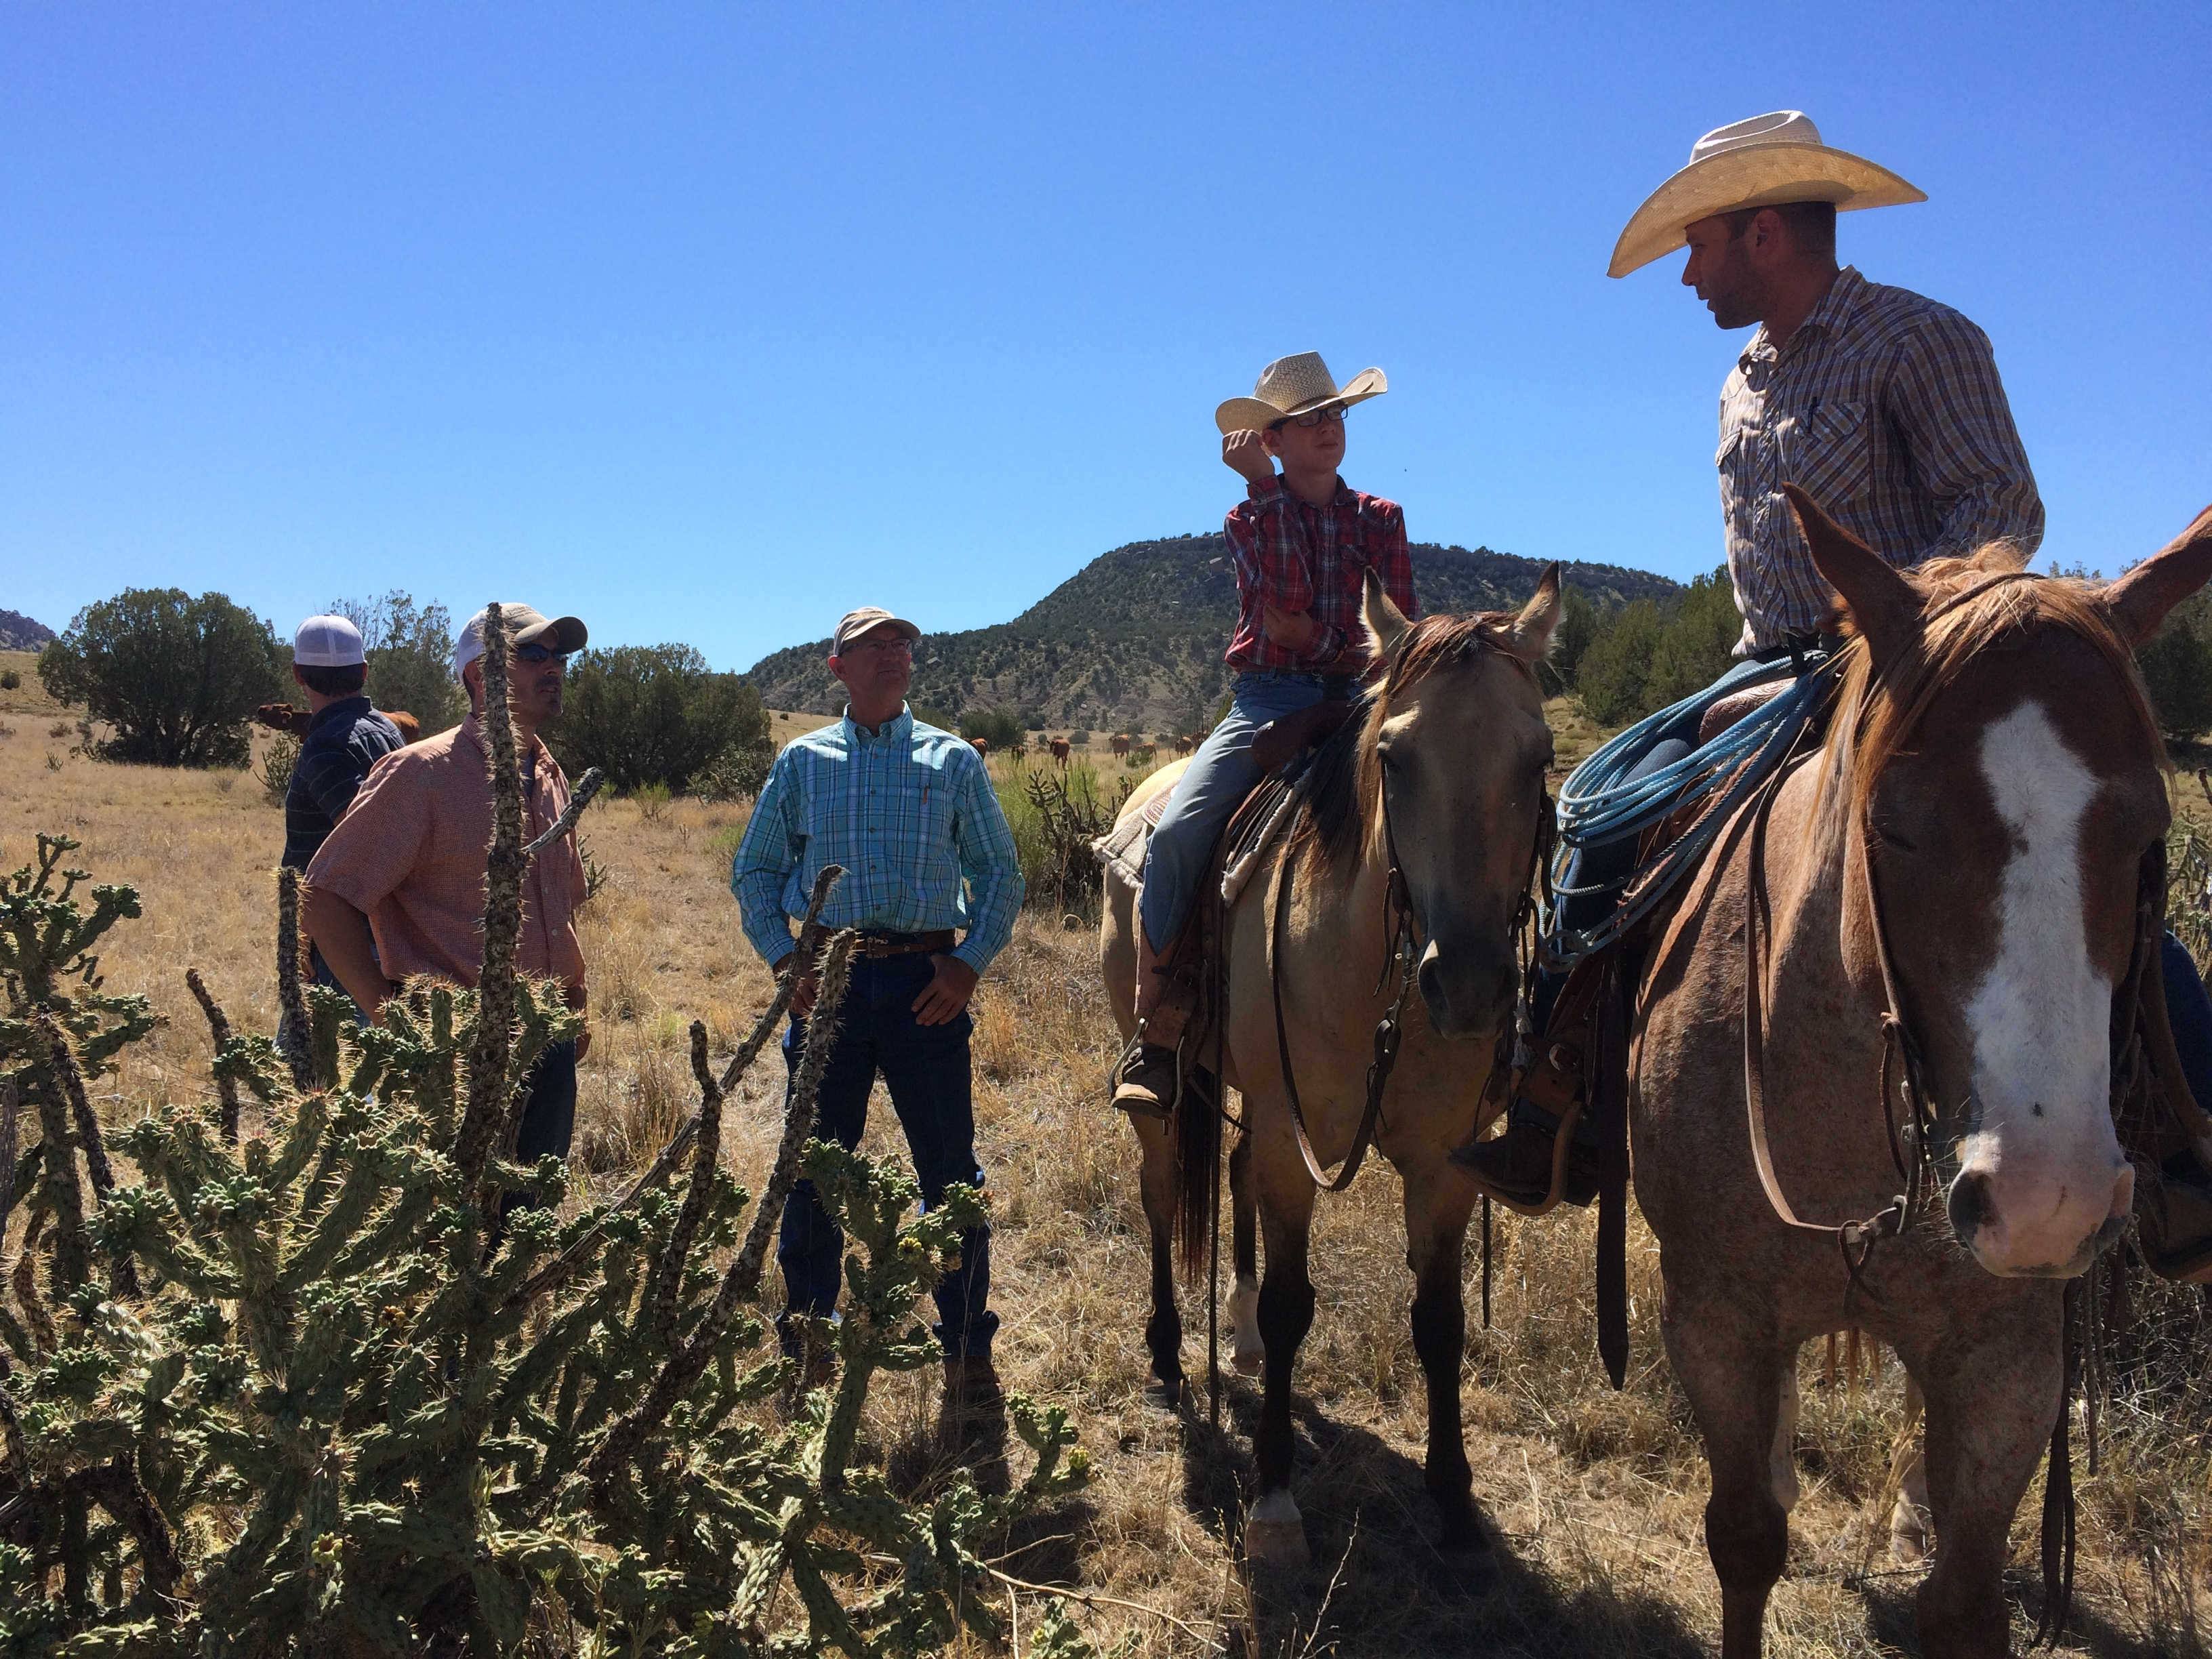 Tnc With Iconic Je Canyon Ranch And Conservation Planning